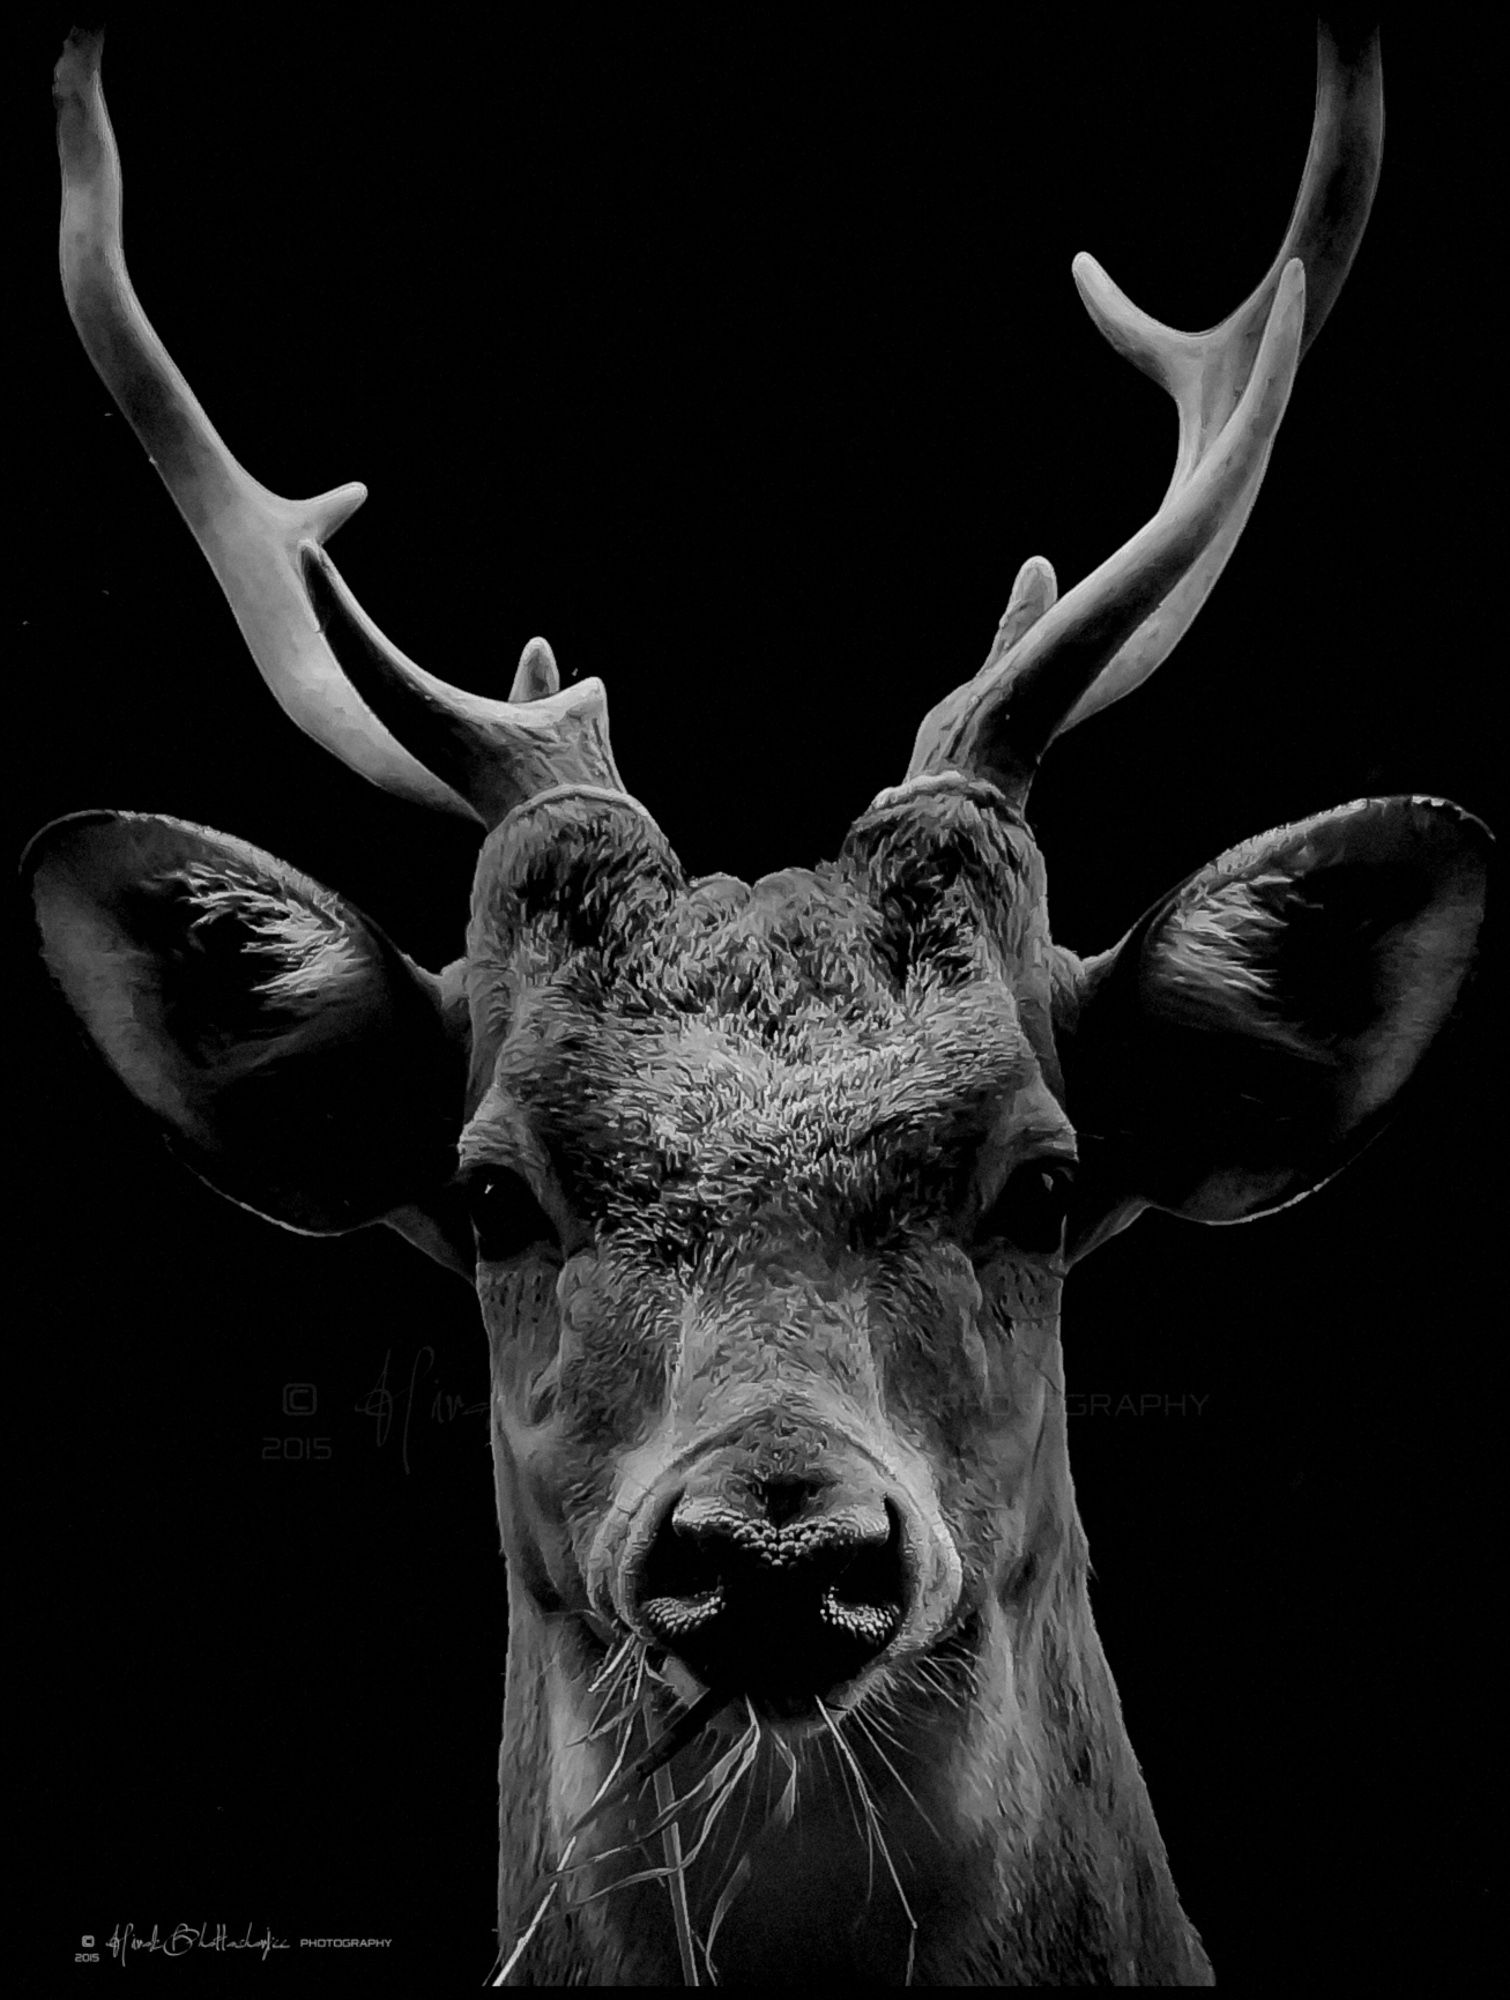 Deer black and white photography google search r deer